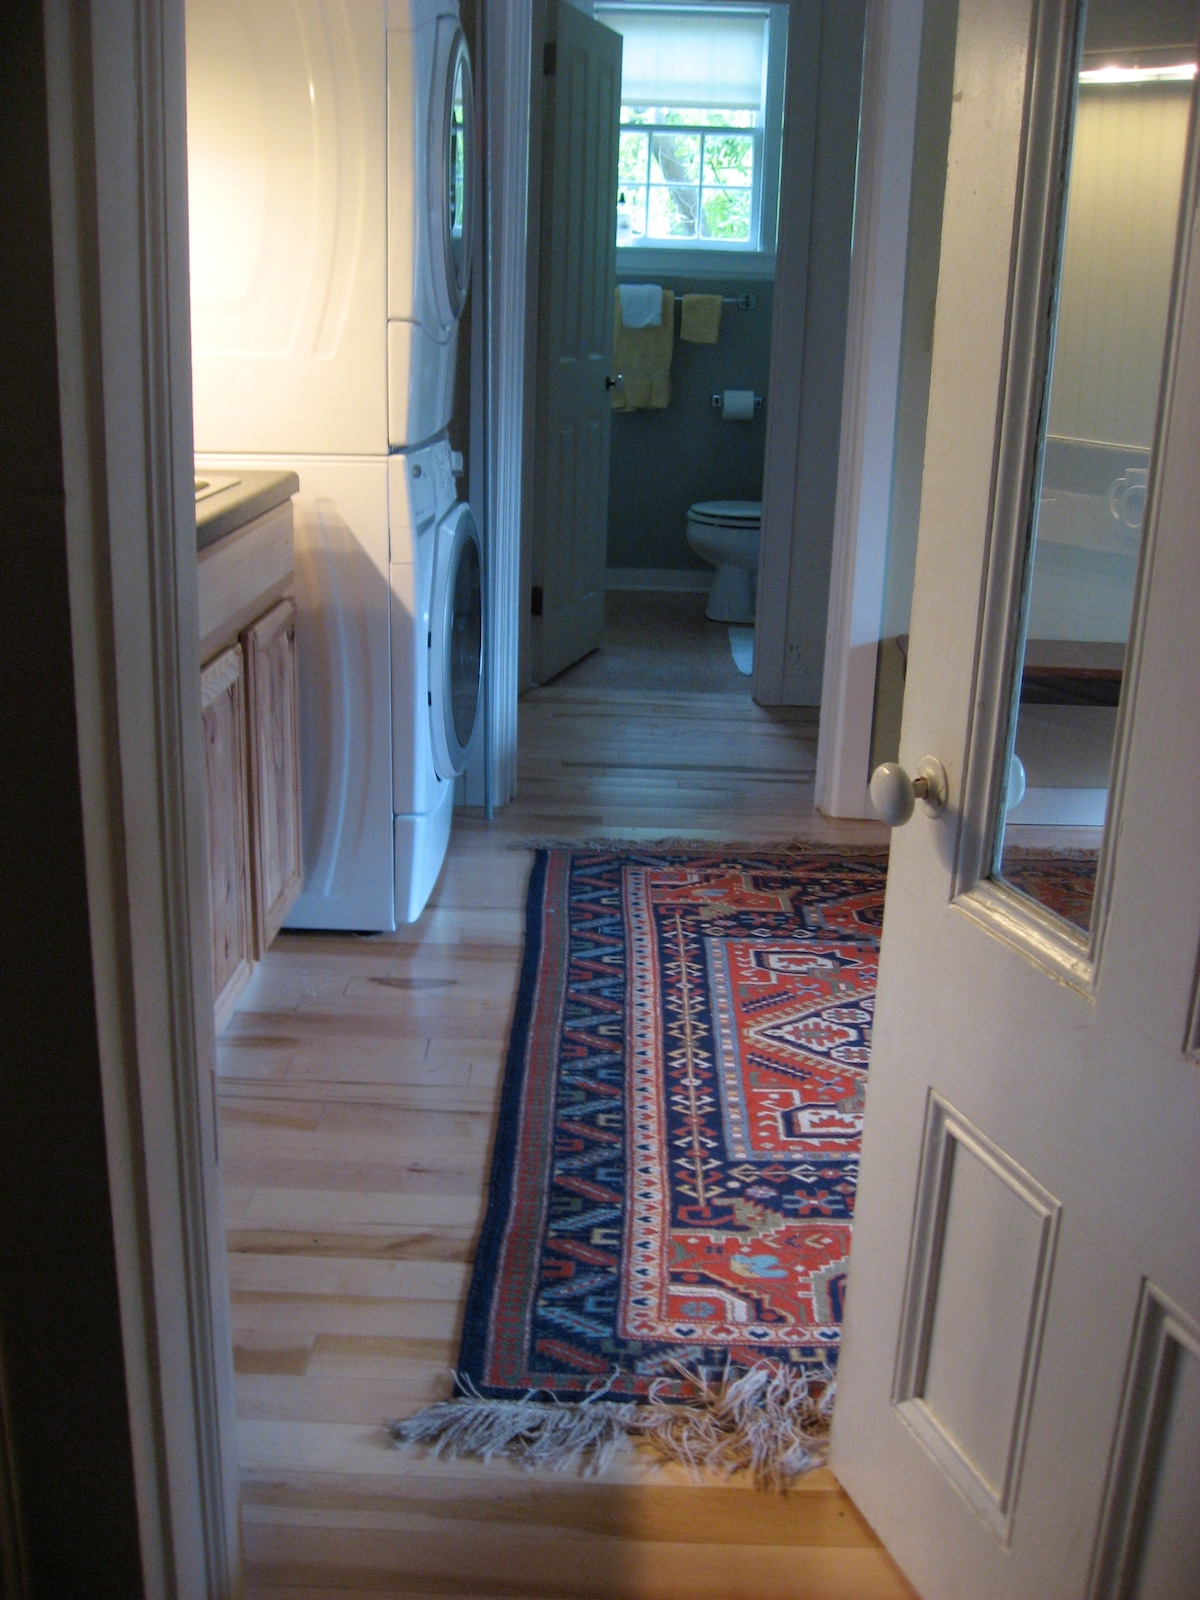 View from the mudroom into the guest quarters